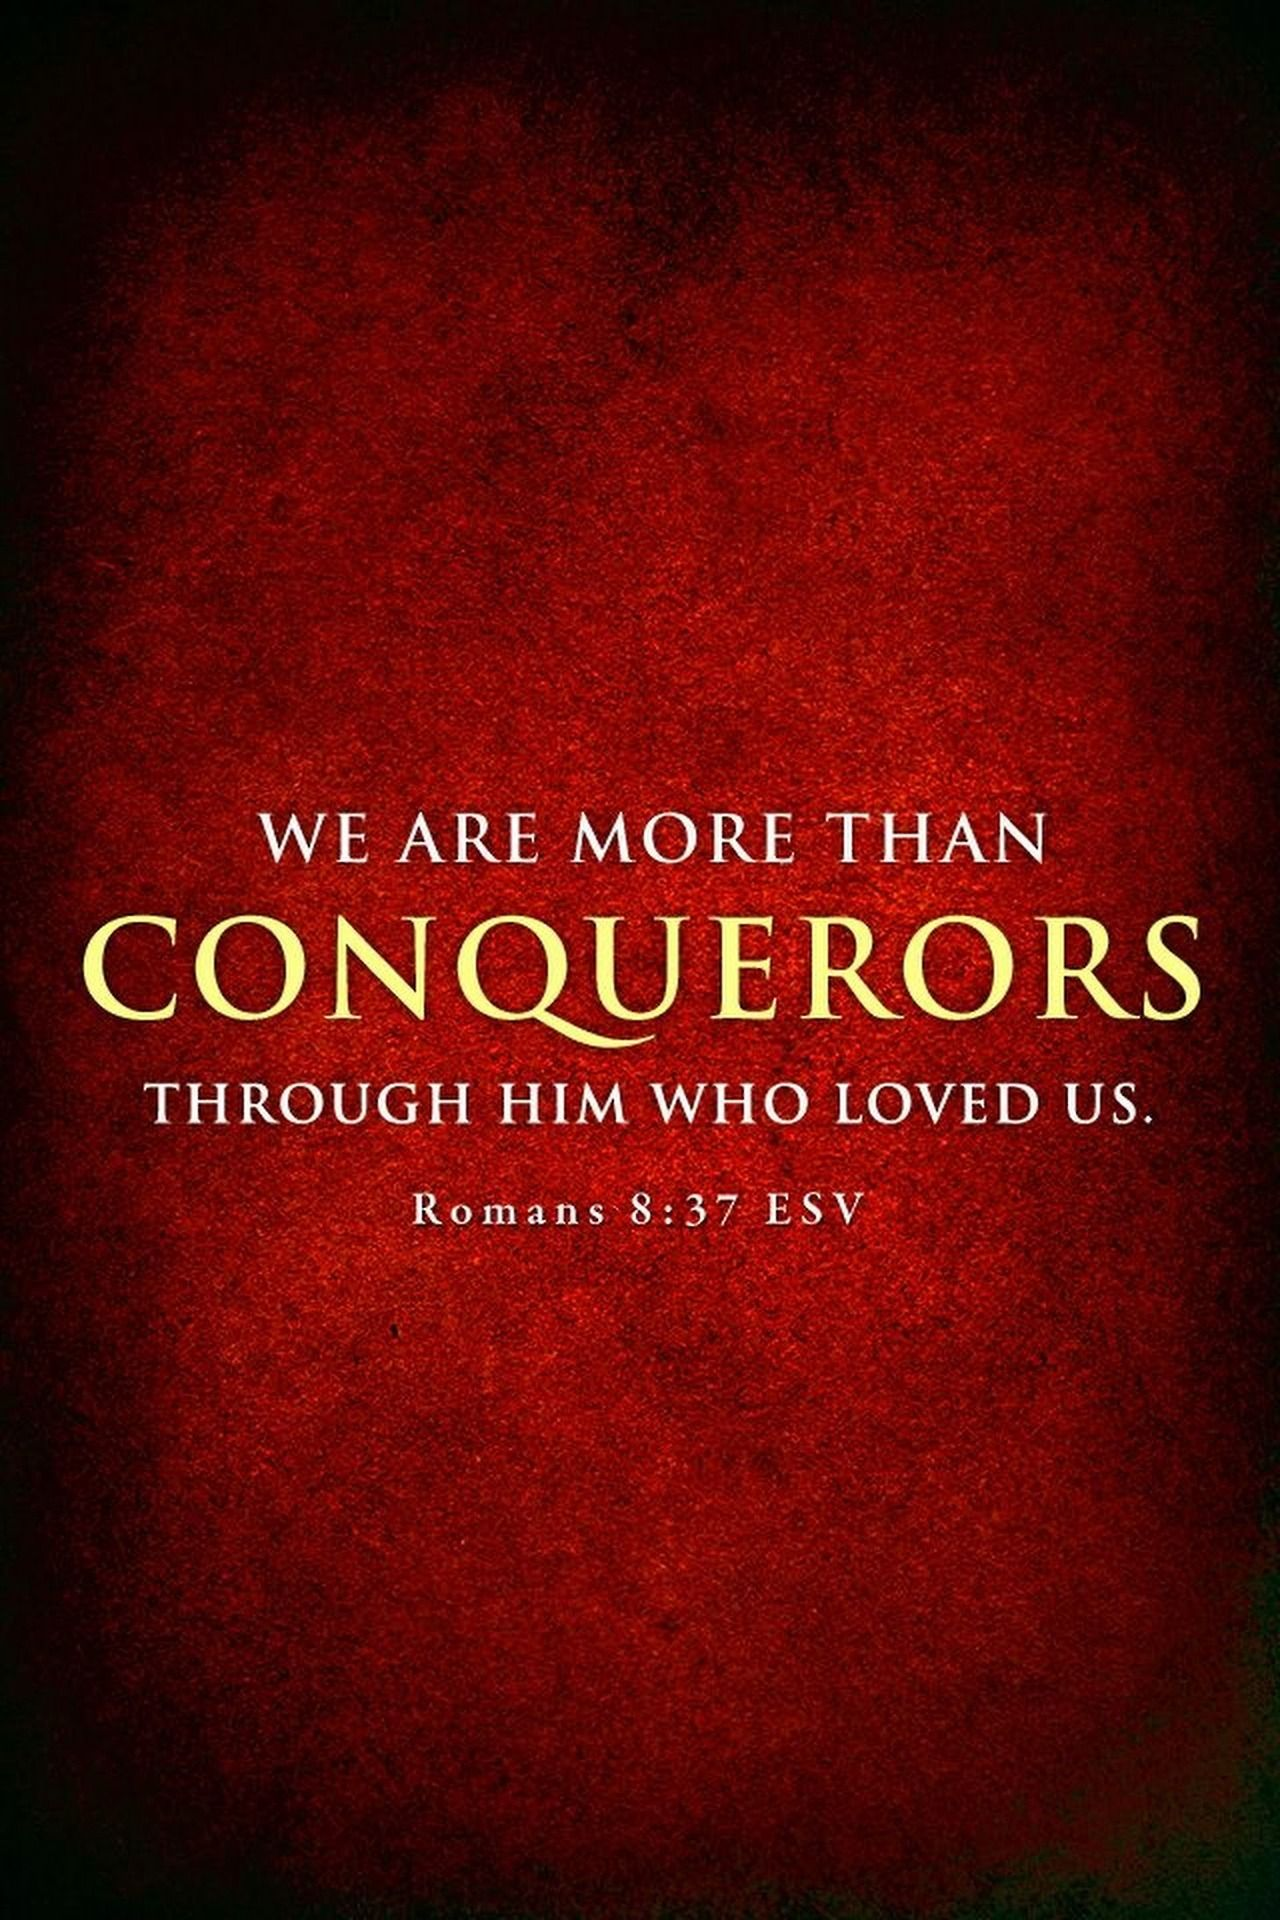 Romans 8:37 (NKJV) - Yet in all these things we are more than